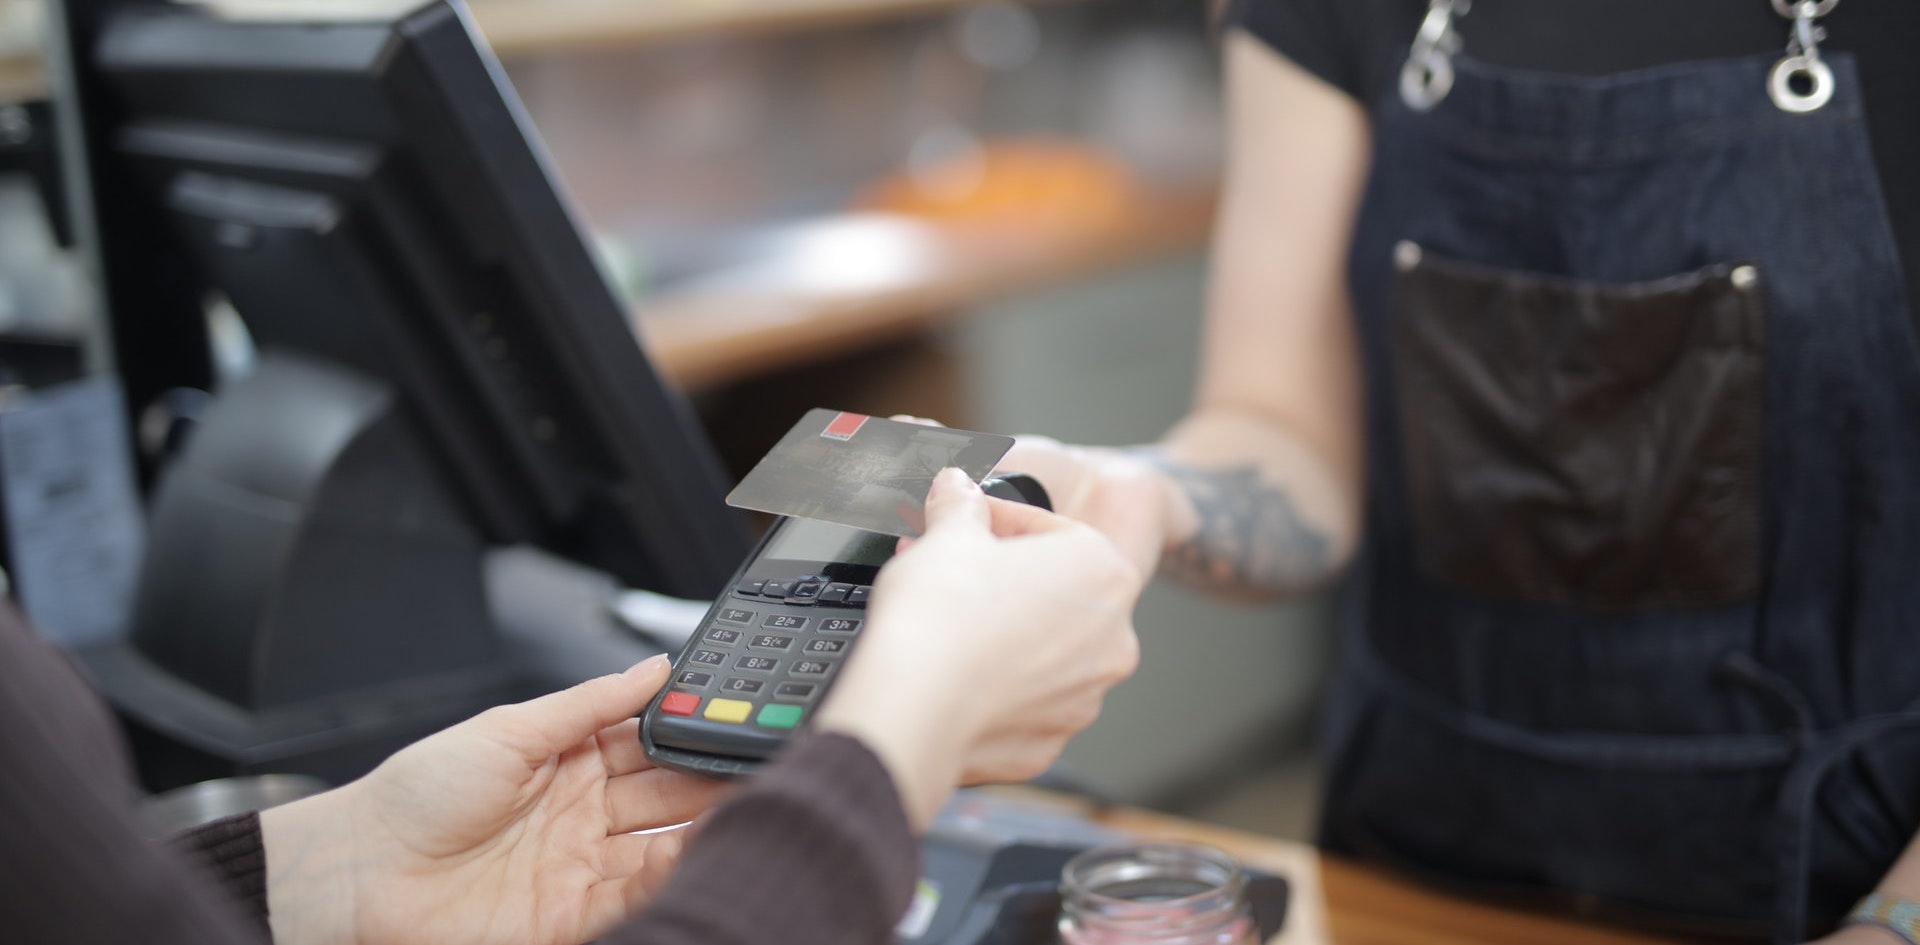 Paiement par carte sans contact